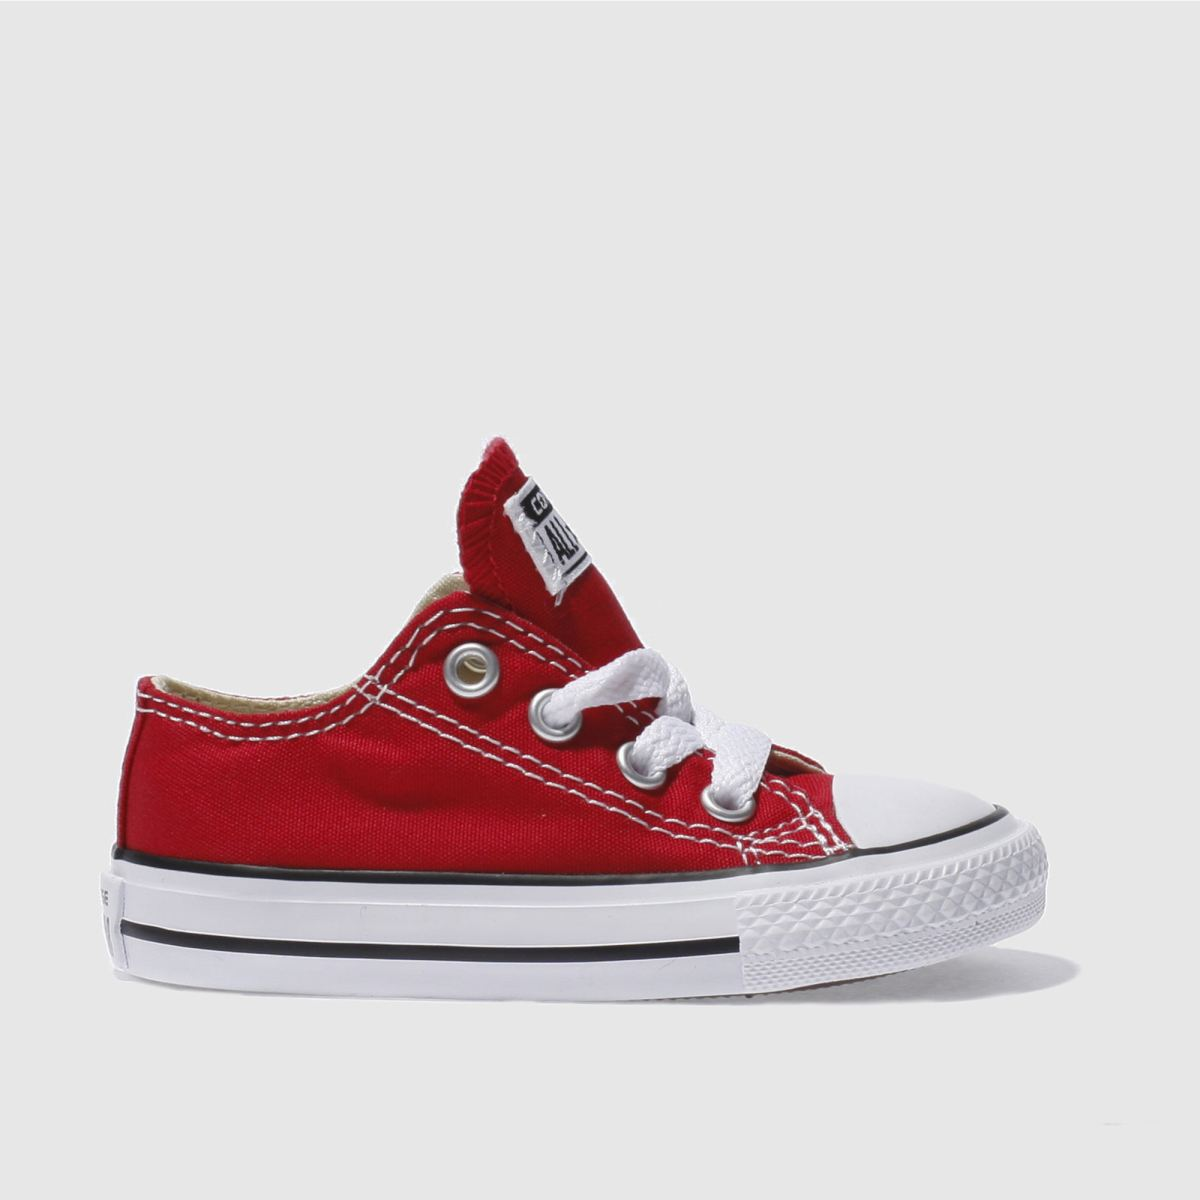 converse red all star lo Boys Toddler Trainers